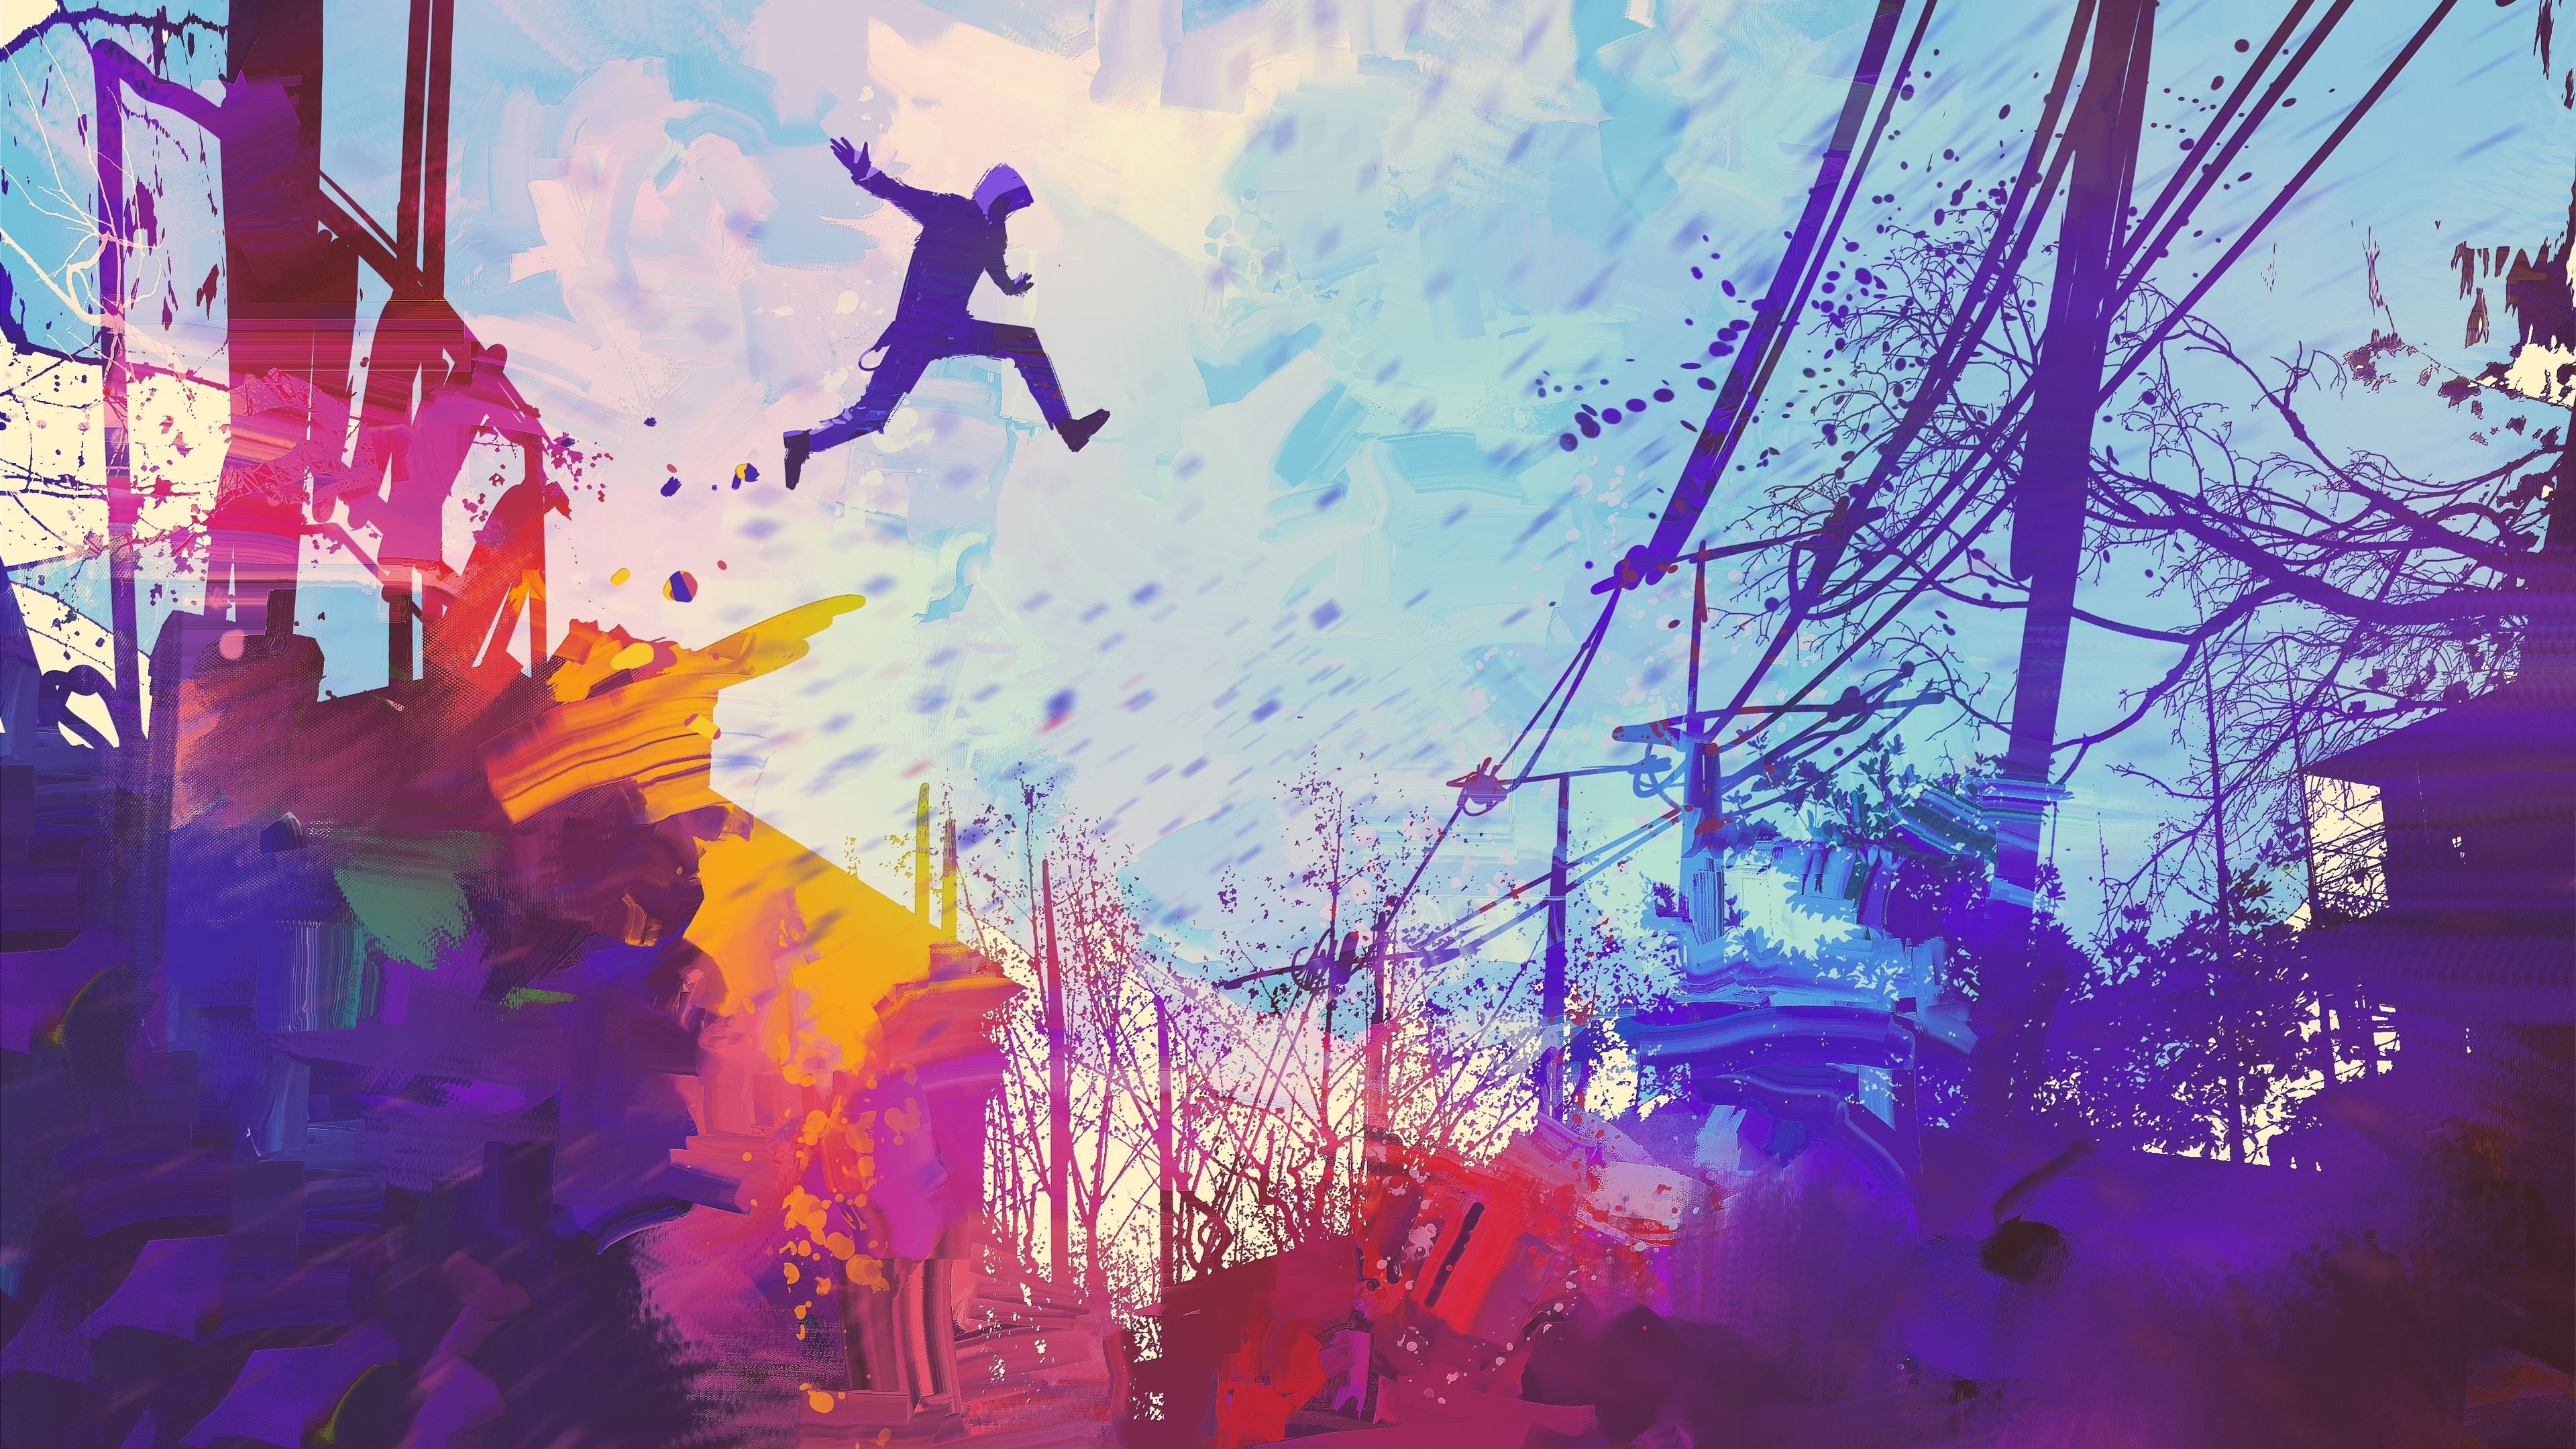 man jumping roof abstract illustration painting 4k 1540756214 - Man Jumping Roof Abstract Illustration Painting 4k - painting wallpapers, jump wallpapers, illustration wallpapers, hd-wallpapers, digital art wallpapers, artwork wallpapers, artist wallpapers, abstract wallpapers, 4k-wallpapers